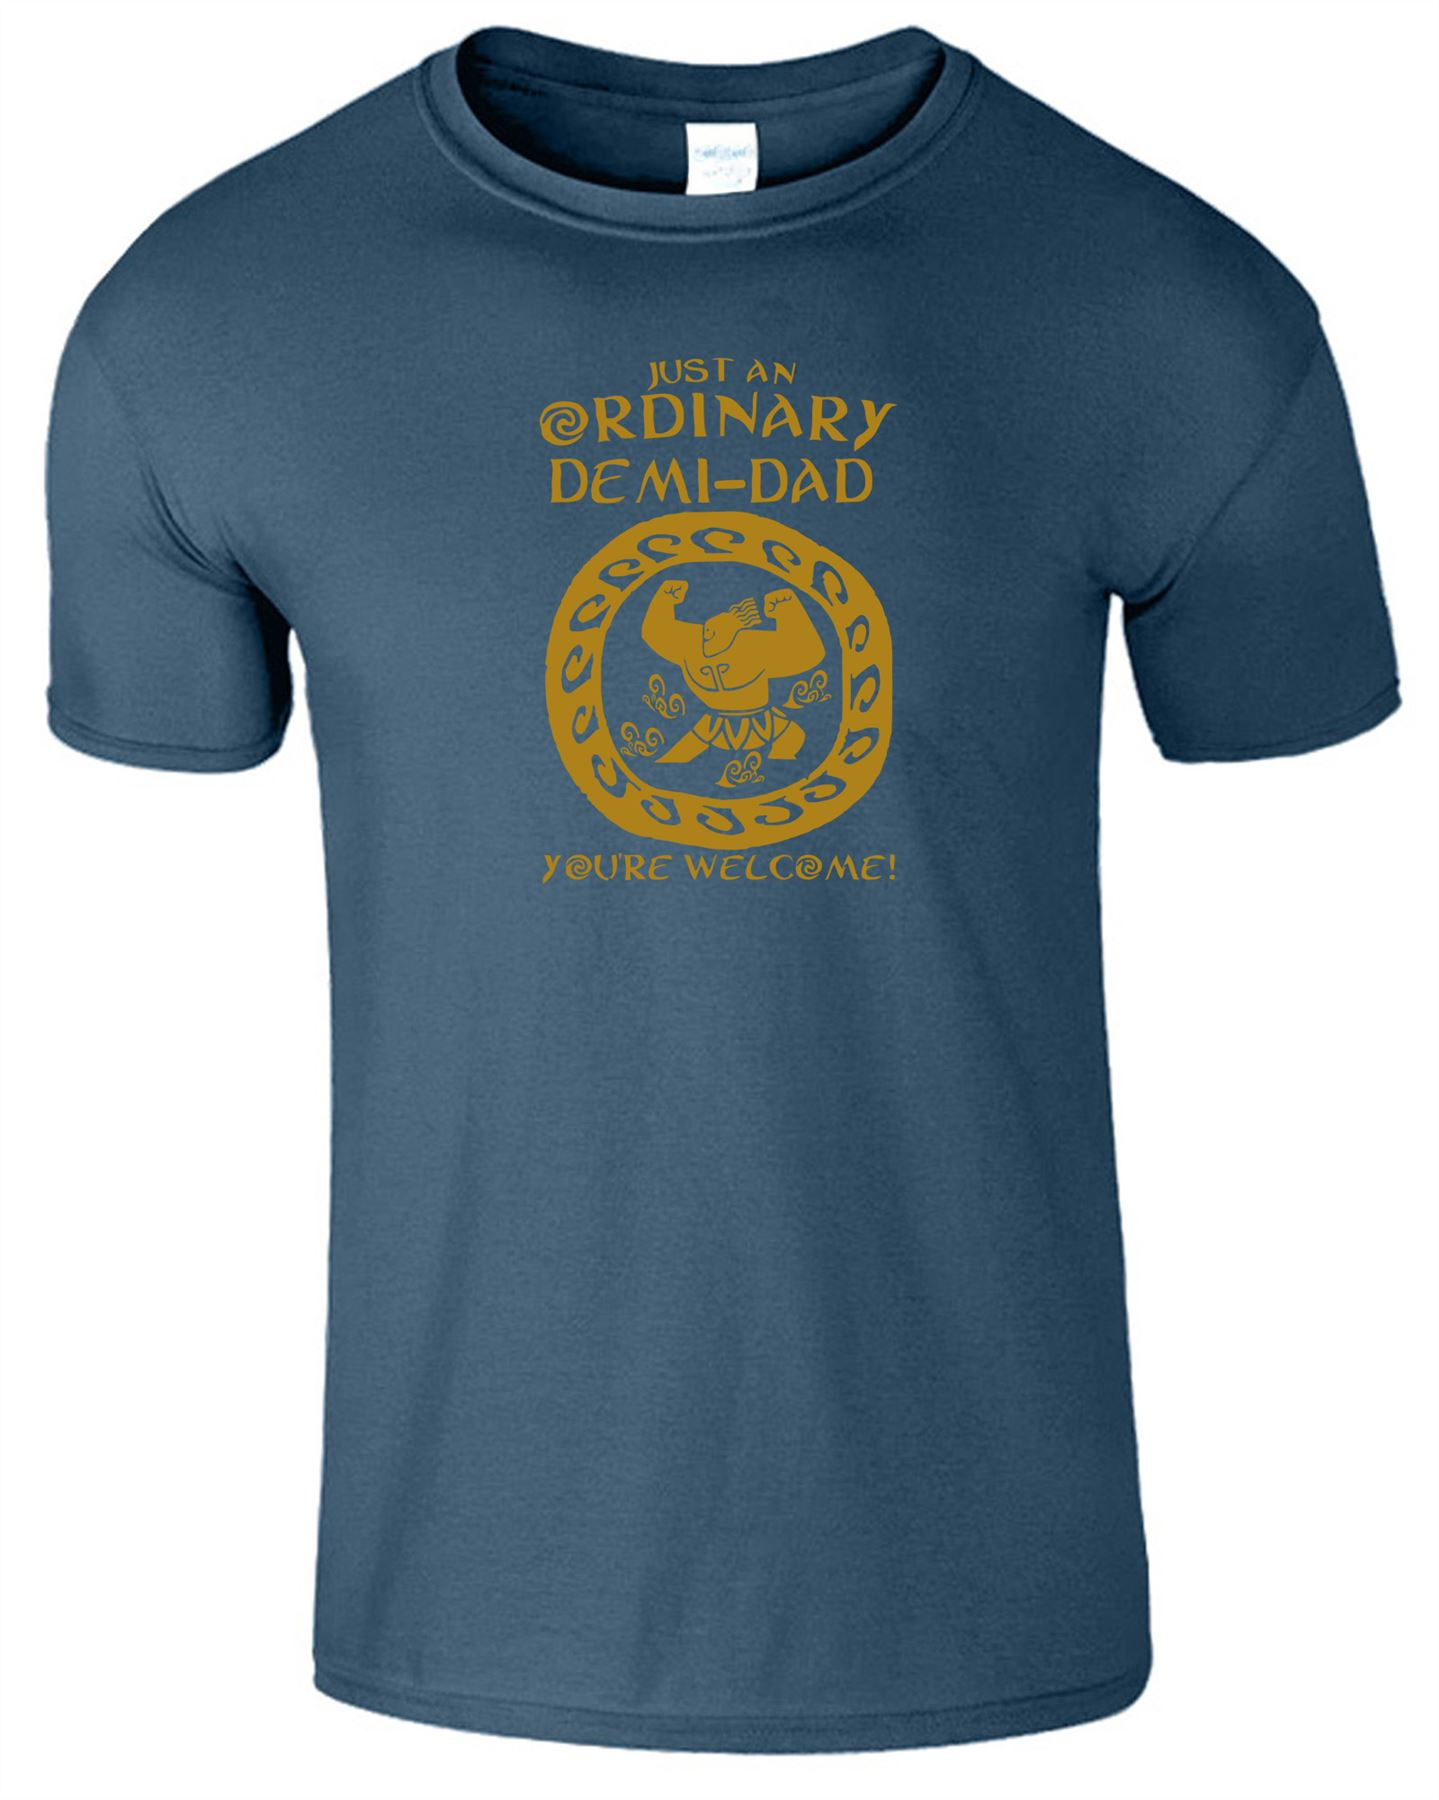 58624ede Just An Ordinary Demi-Dad Mens Moanna T-Shirt Fathers Day Unisex ...